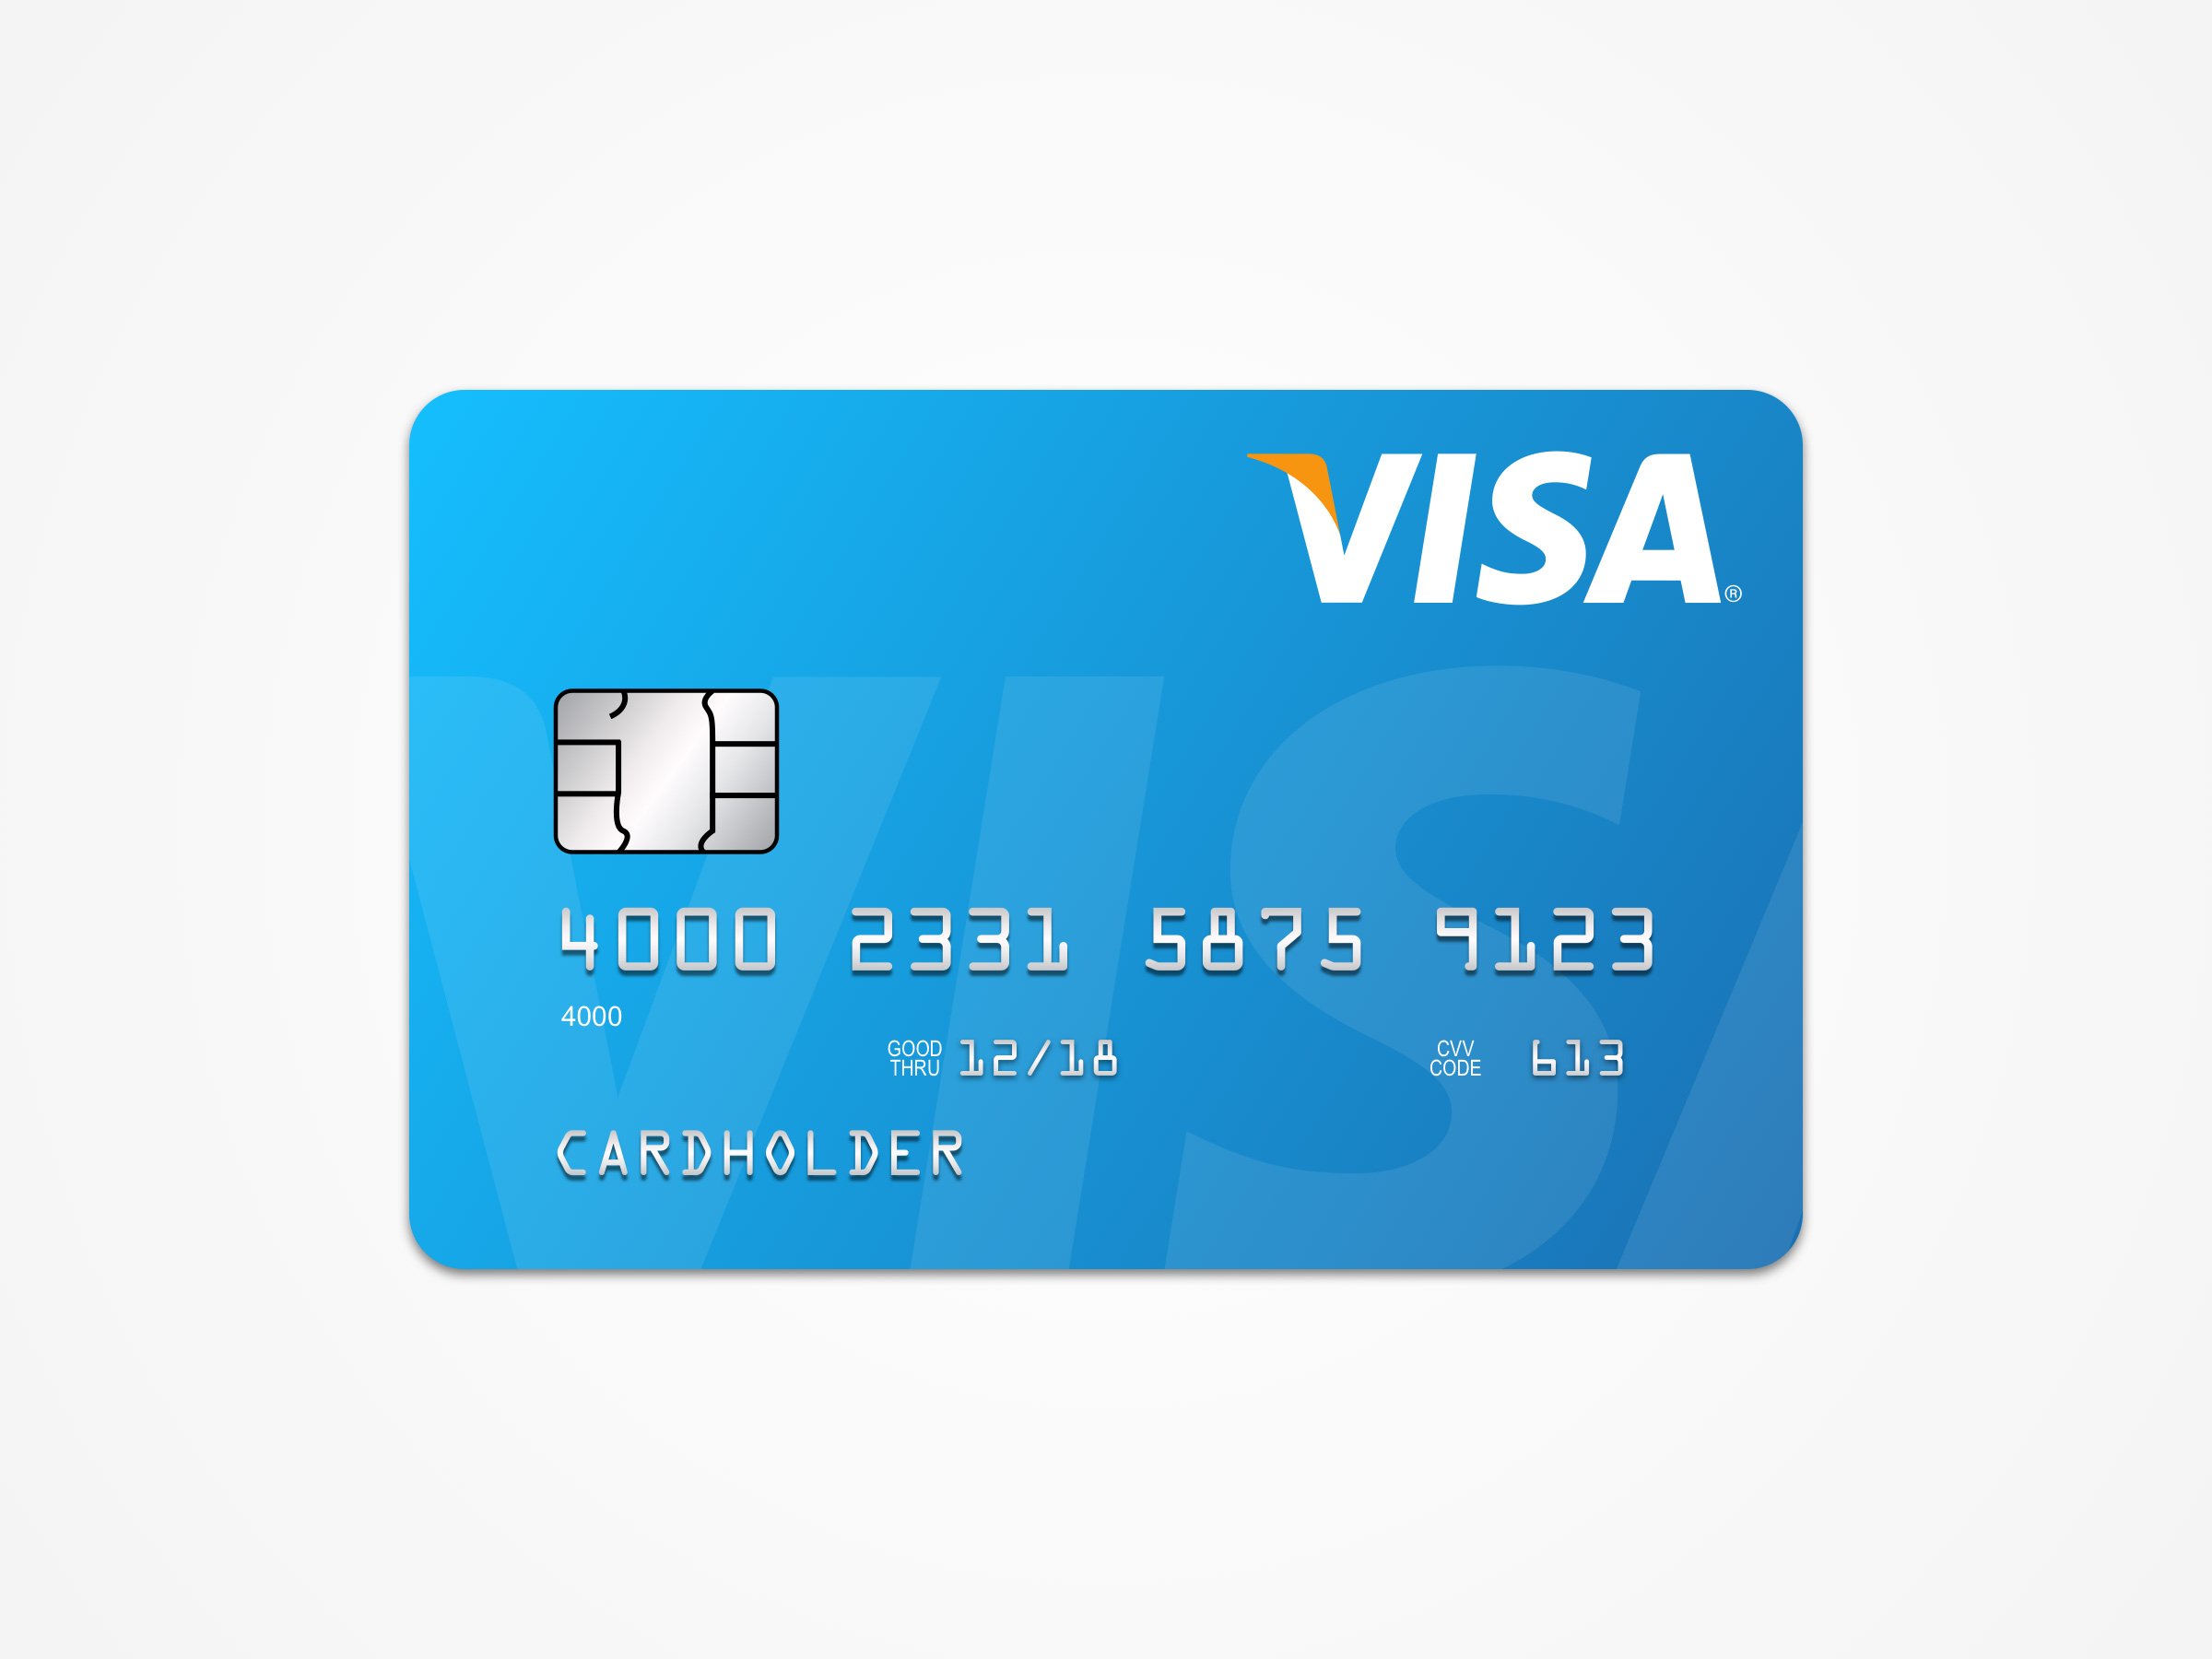 visa card template free sketch - Free Visa Card